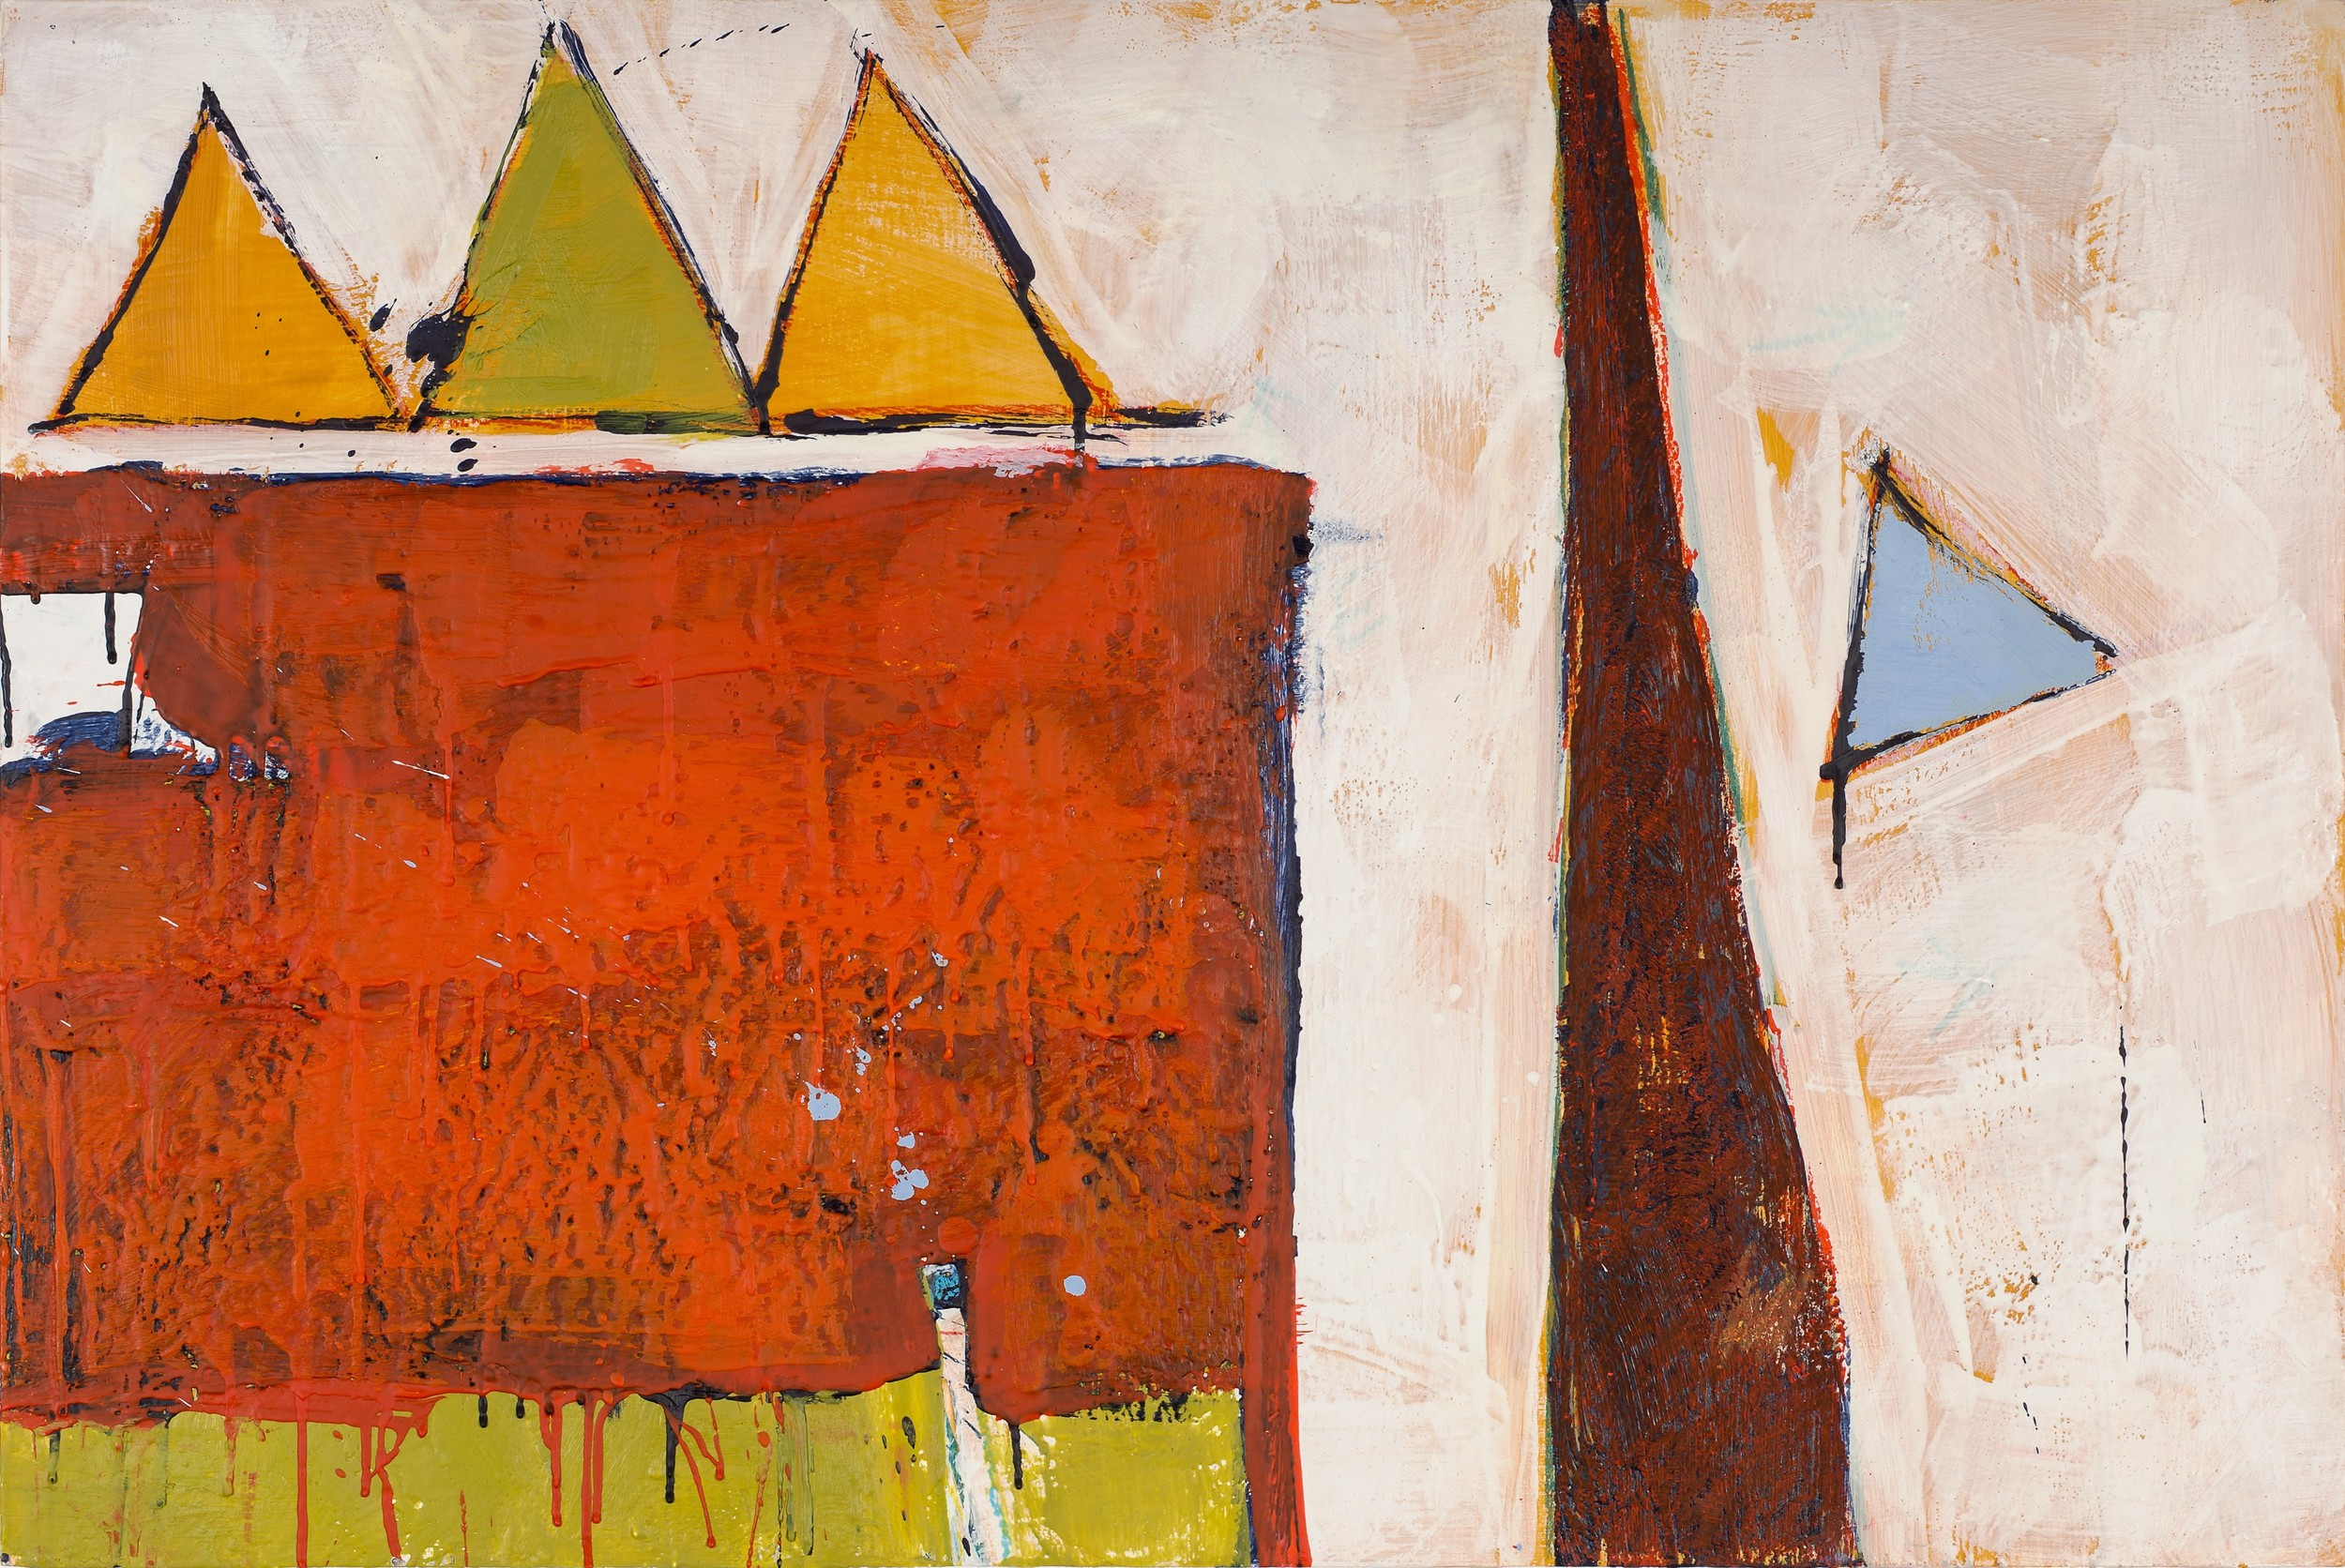 KW-073, Keith Wood, This Time 13, 2015, Encaustic on Panel, 36 x 24, $1,650